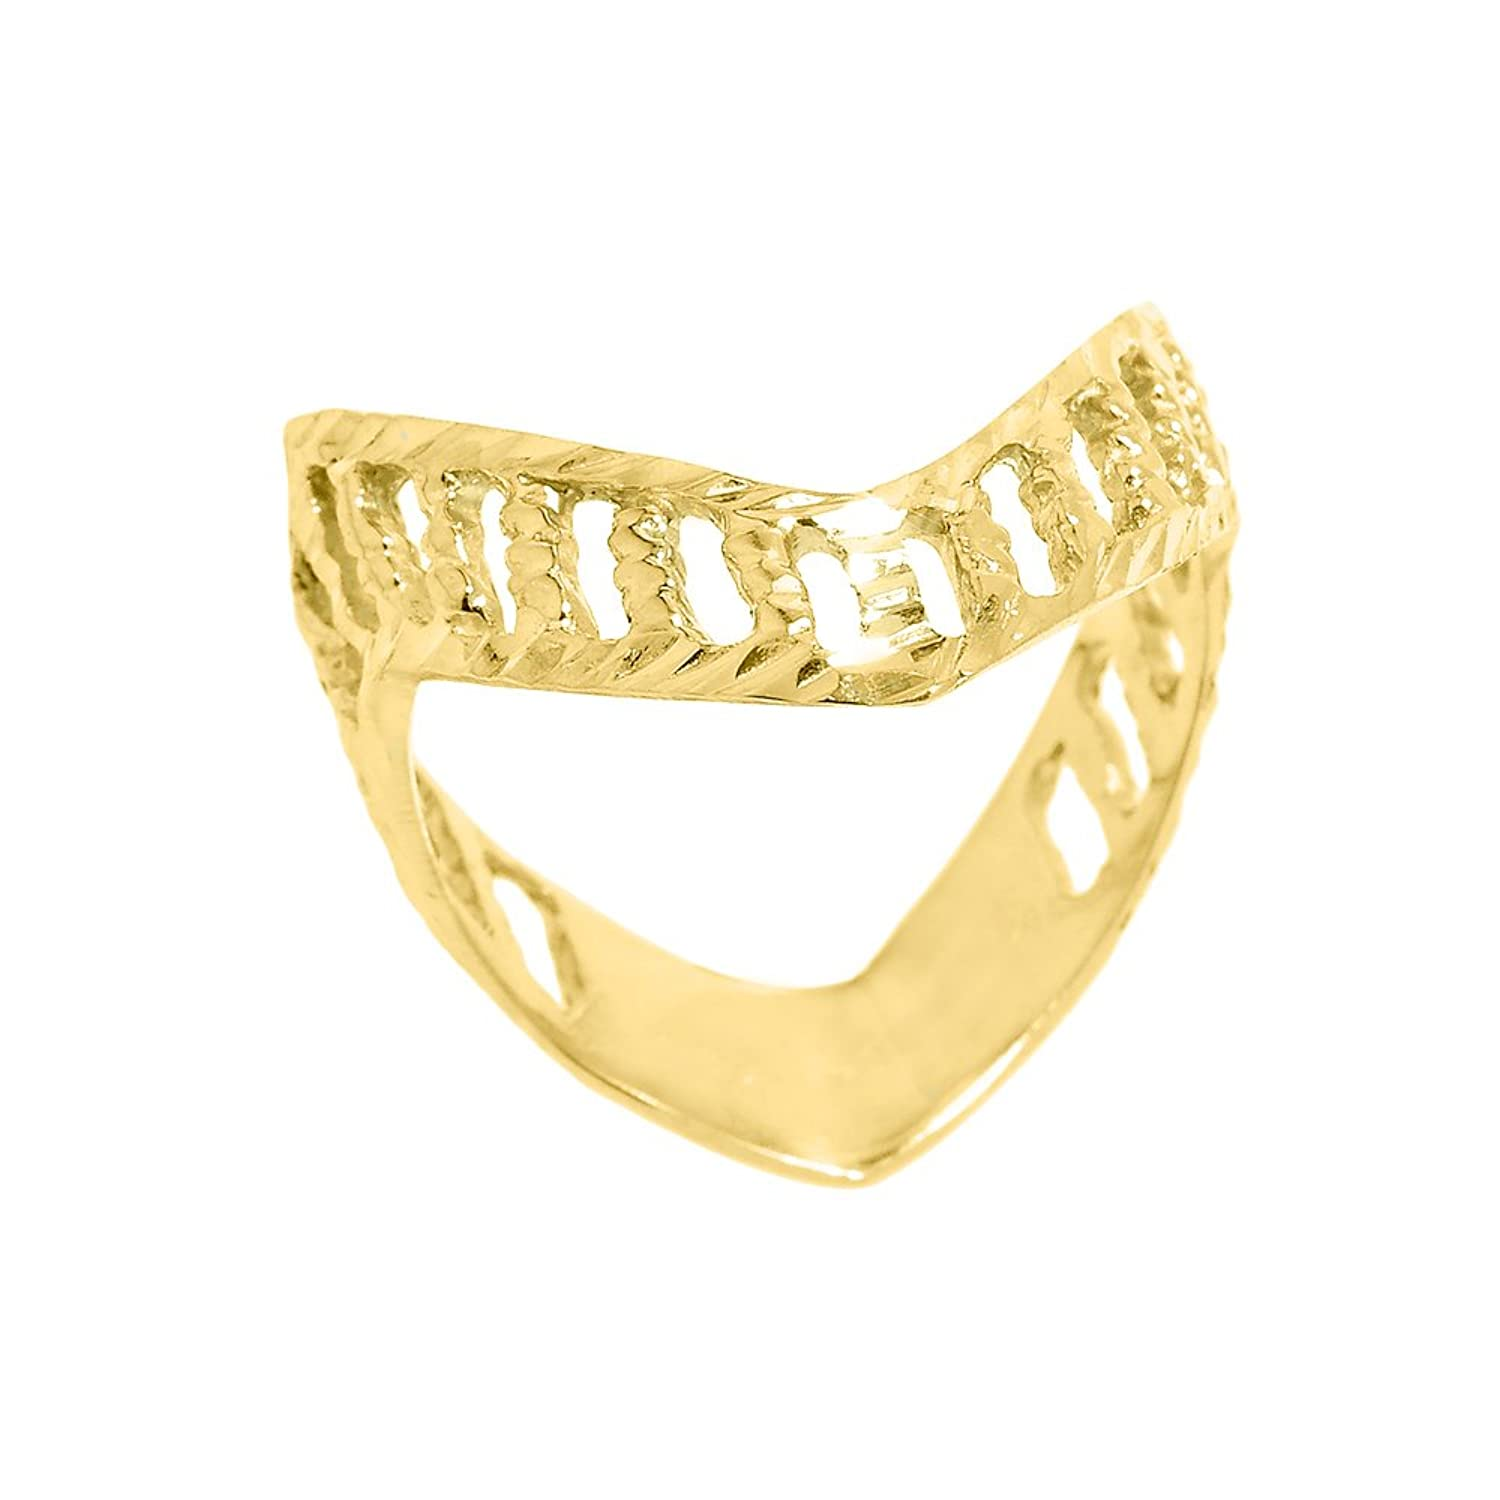 Polished 10k Yellow Gold Open Design Band Thumb Ring